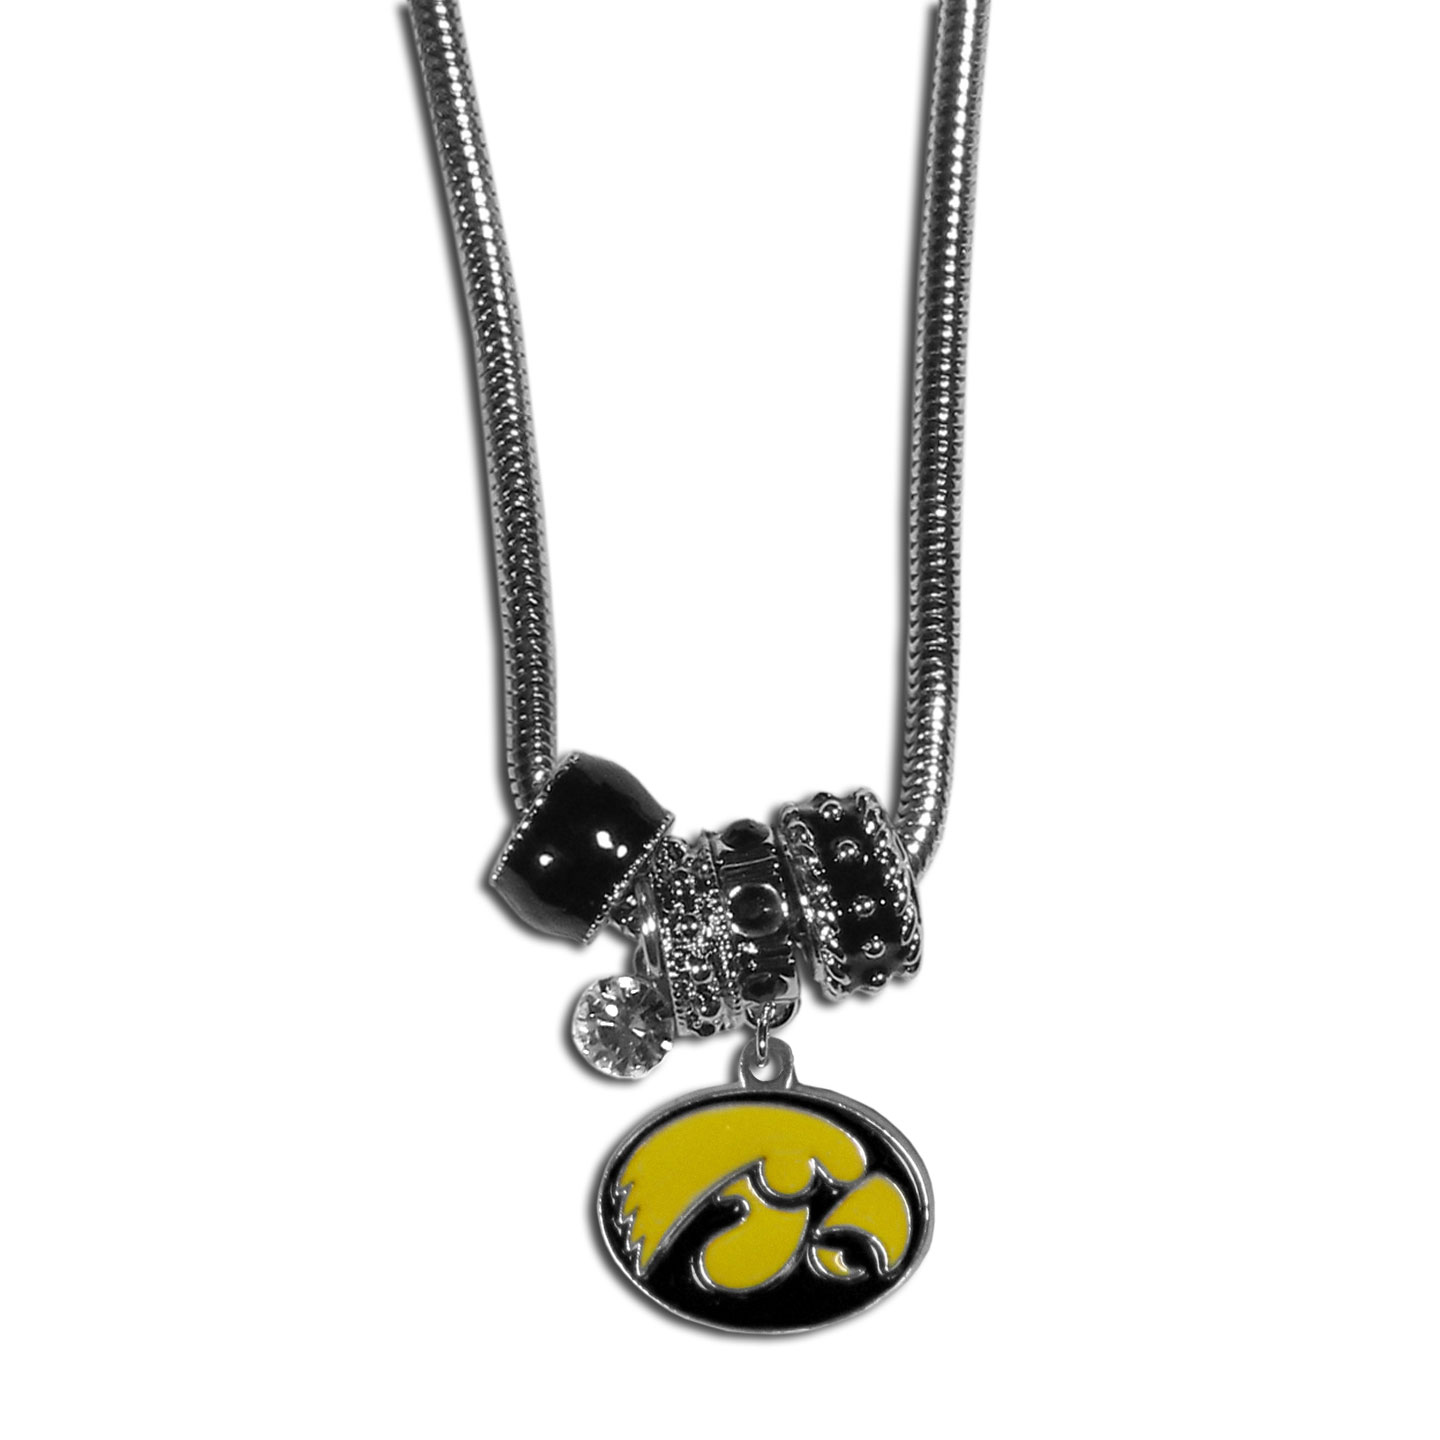 Iowa Hawkeyes Euro Bead Necklace - We have combined the wildly popular Euro style beads with your favorite team to create our Iowa Hawkeyes bead necklace. The 18 inch snake chain features 4 Euro beads with enameled team colors and rhinestone accents with a high polish, nickel free charm and rhinestone charm. Perfect way to show off your team pride.